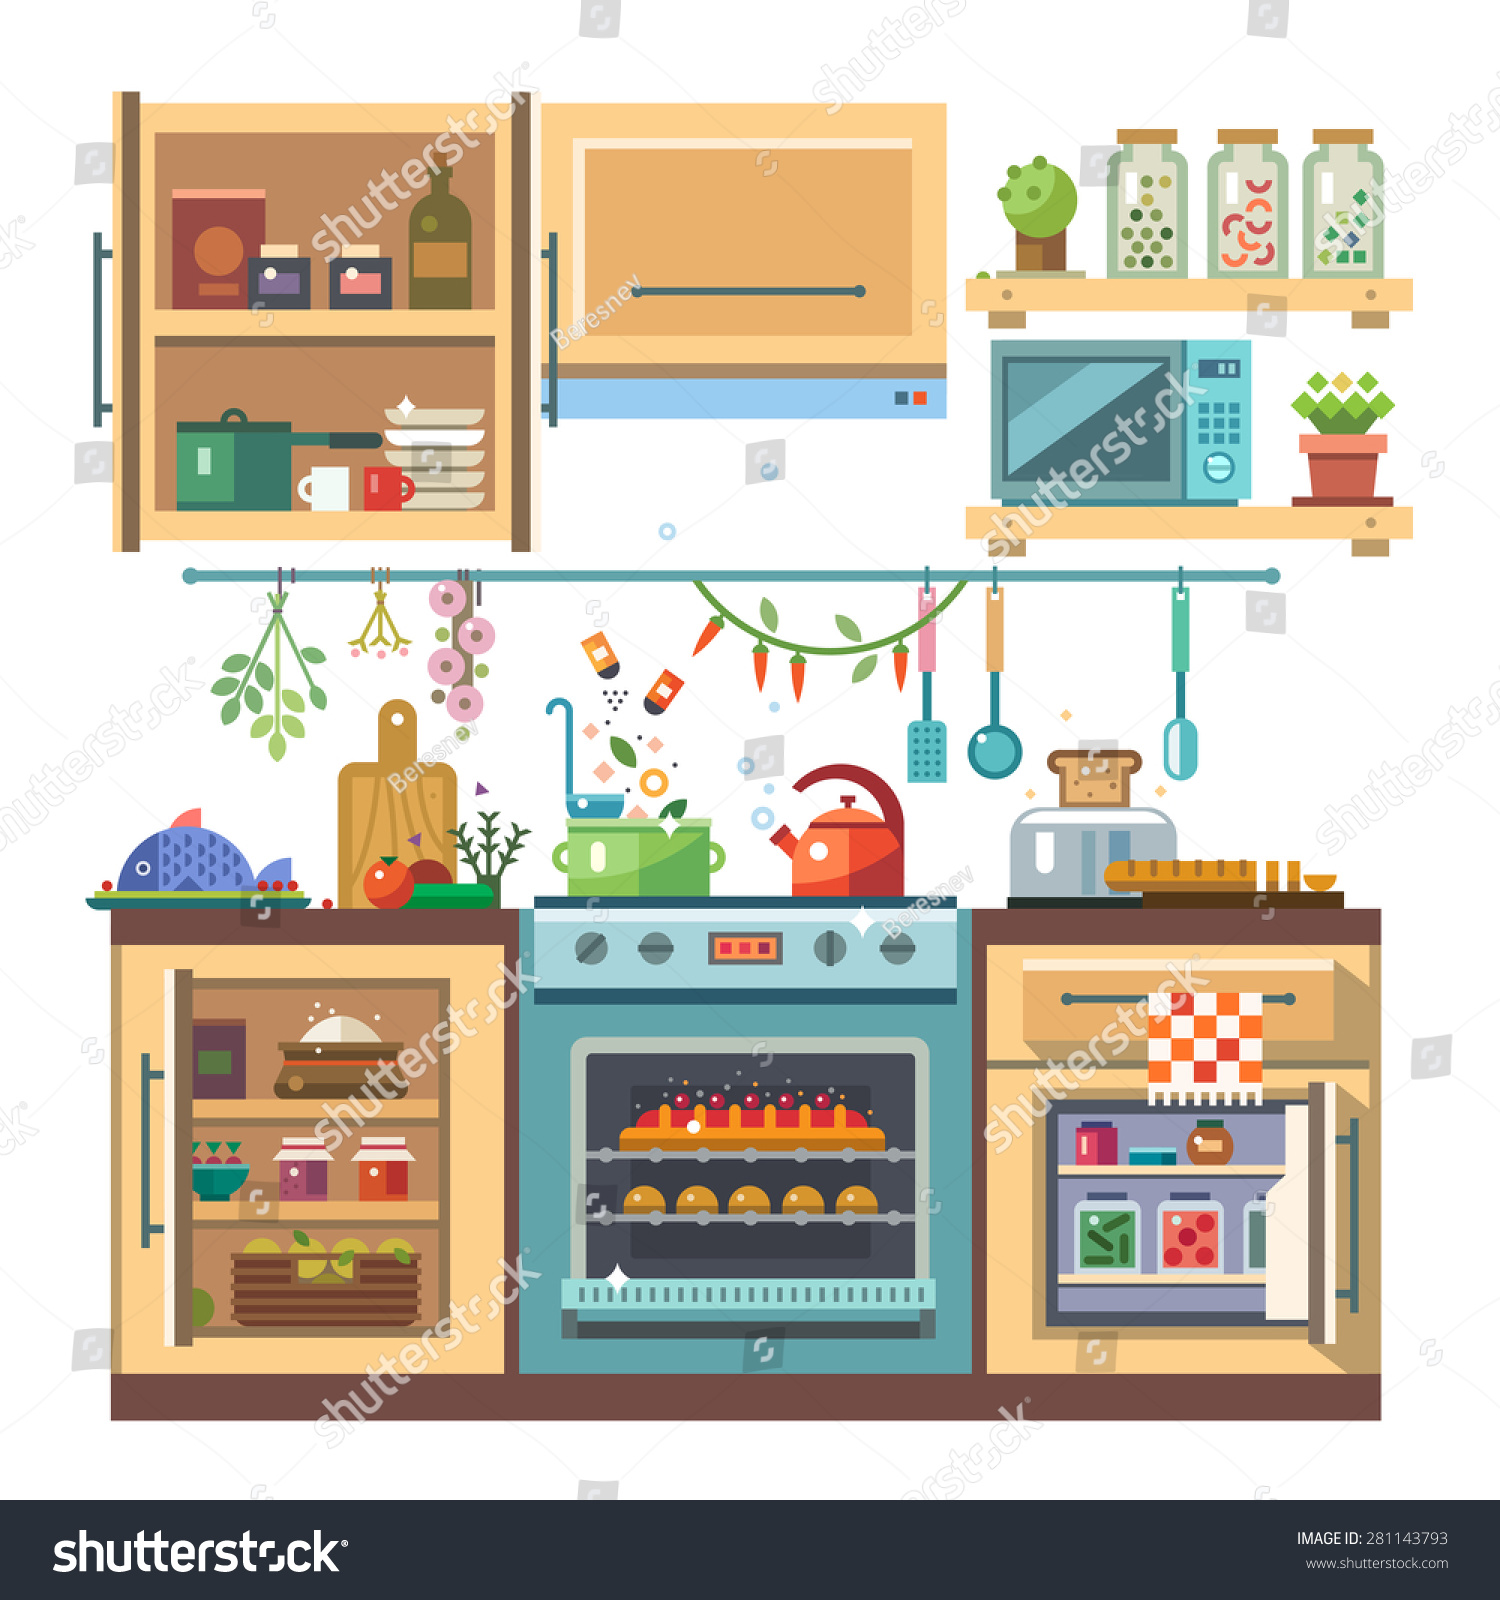 Home Kitchenware Food Devices Color Vector Stock Vector